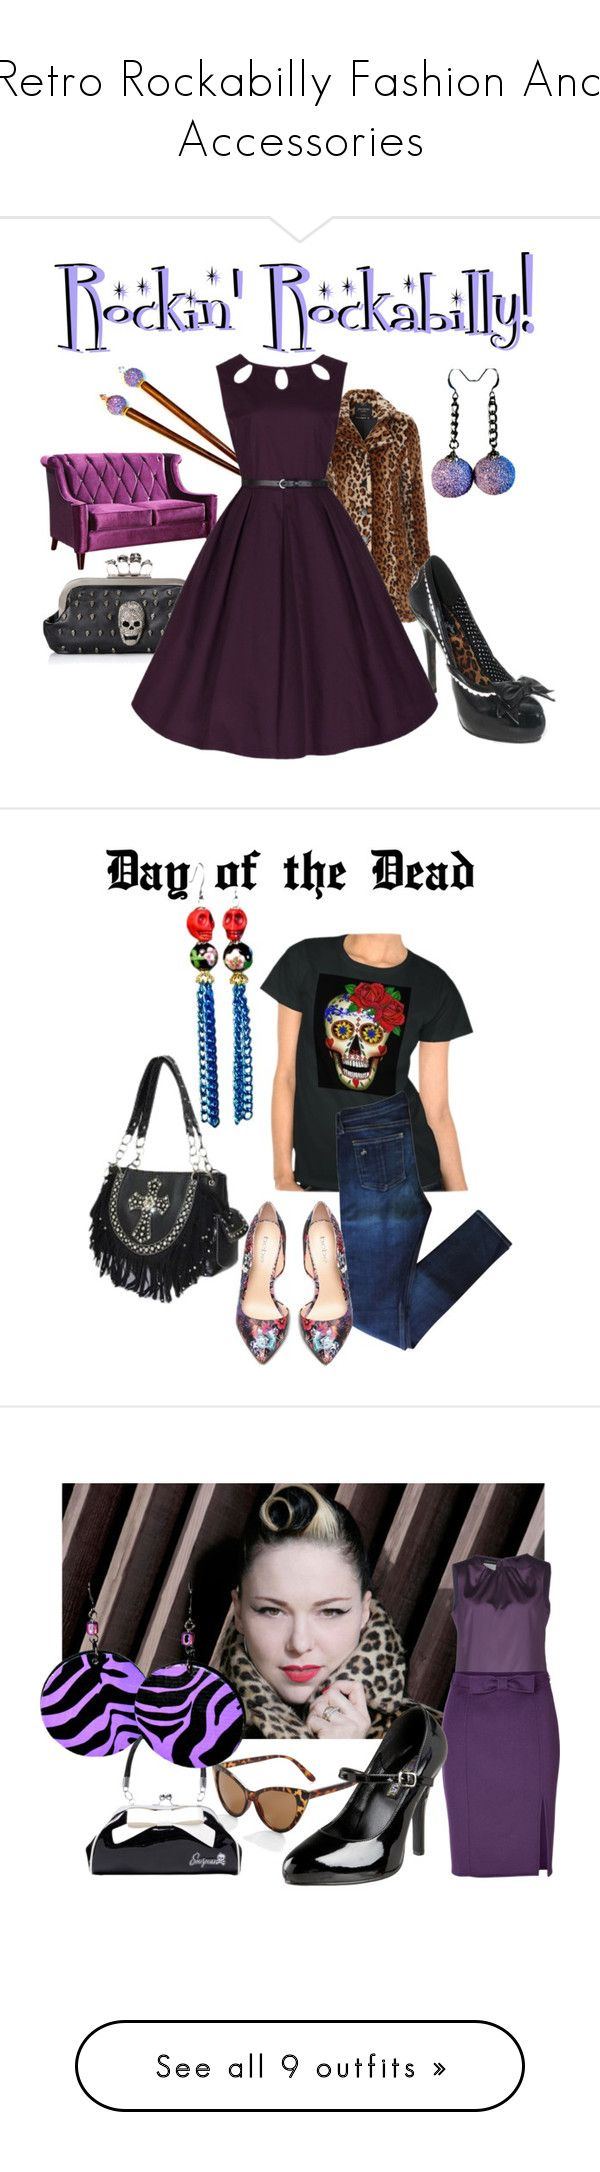 """""""Retro Rockabilly Fashion And Accessories"""" by blukatdesign ❤ liked on Polyvore featuring retro, rockabilly, Armen Living, Jane Norman, Bettie Page, rag & bone, Bebe, Dayofthedead, sugarskull and Emporio Armani"""